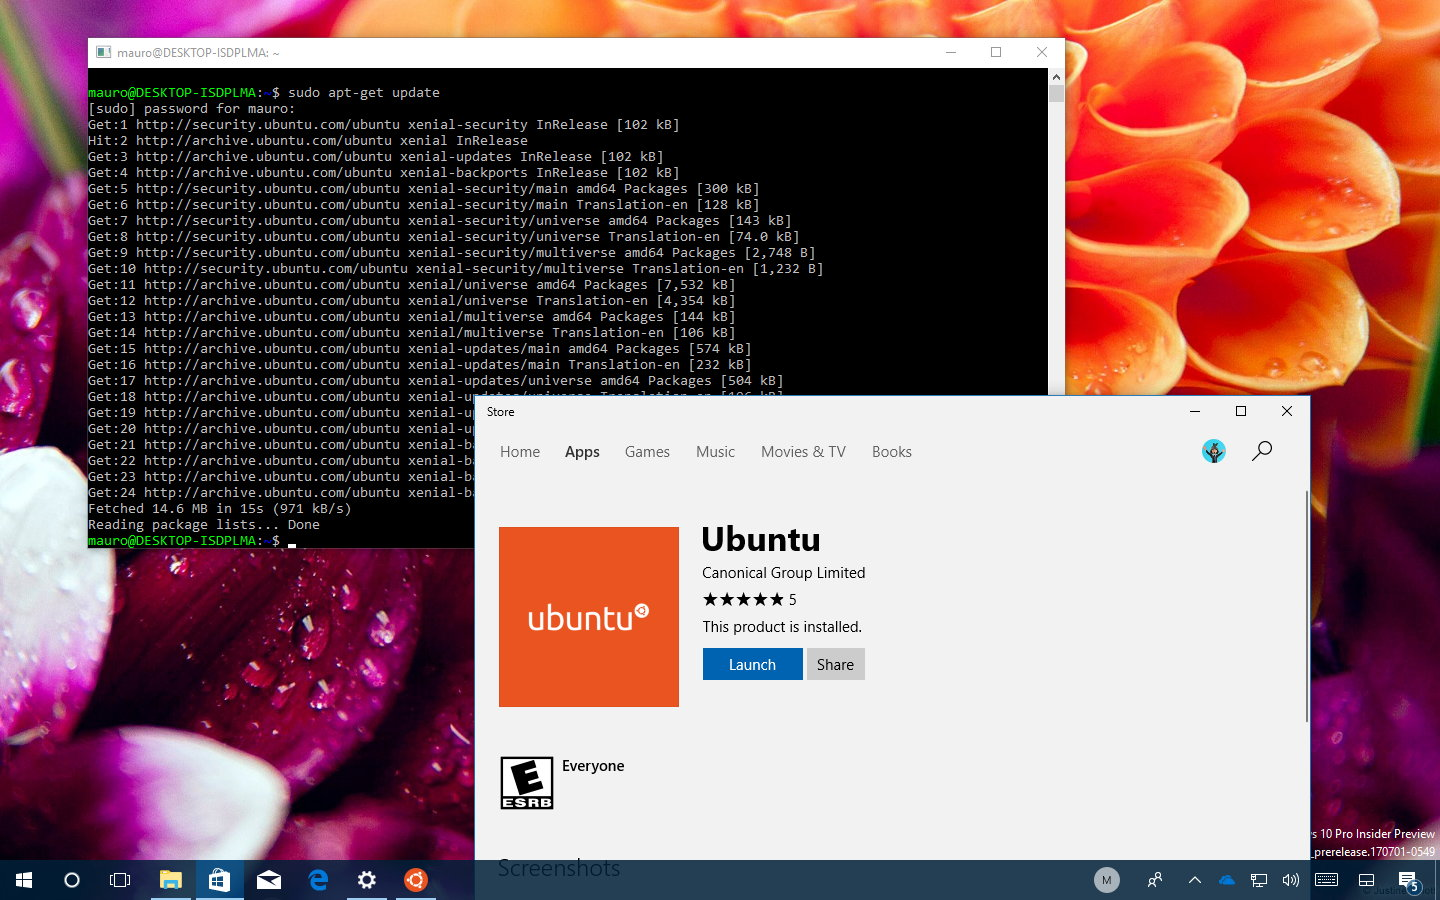 Ubuntu for Windows 10 in the Store